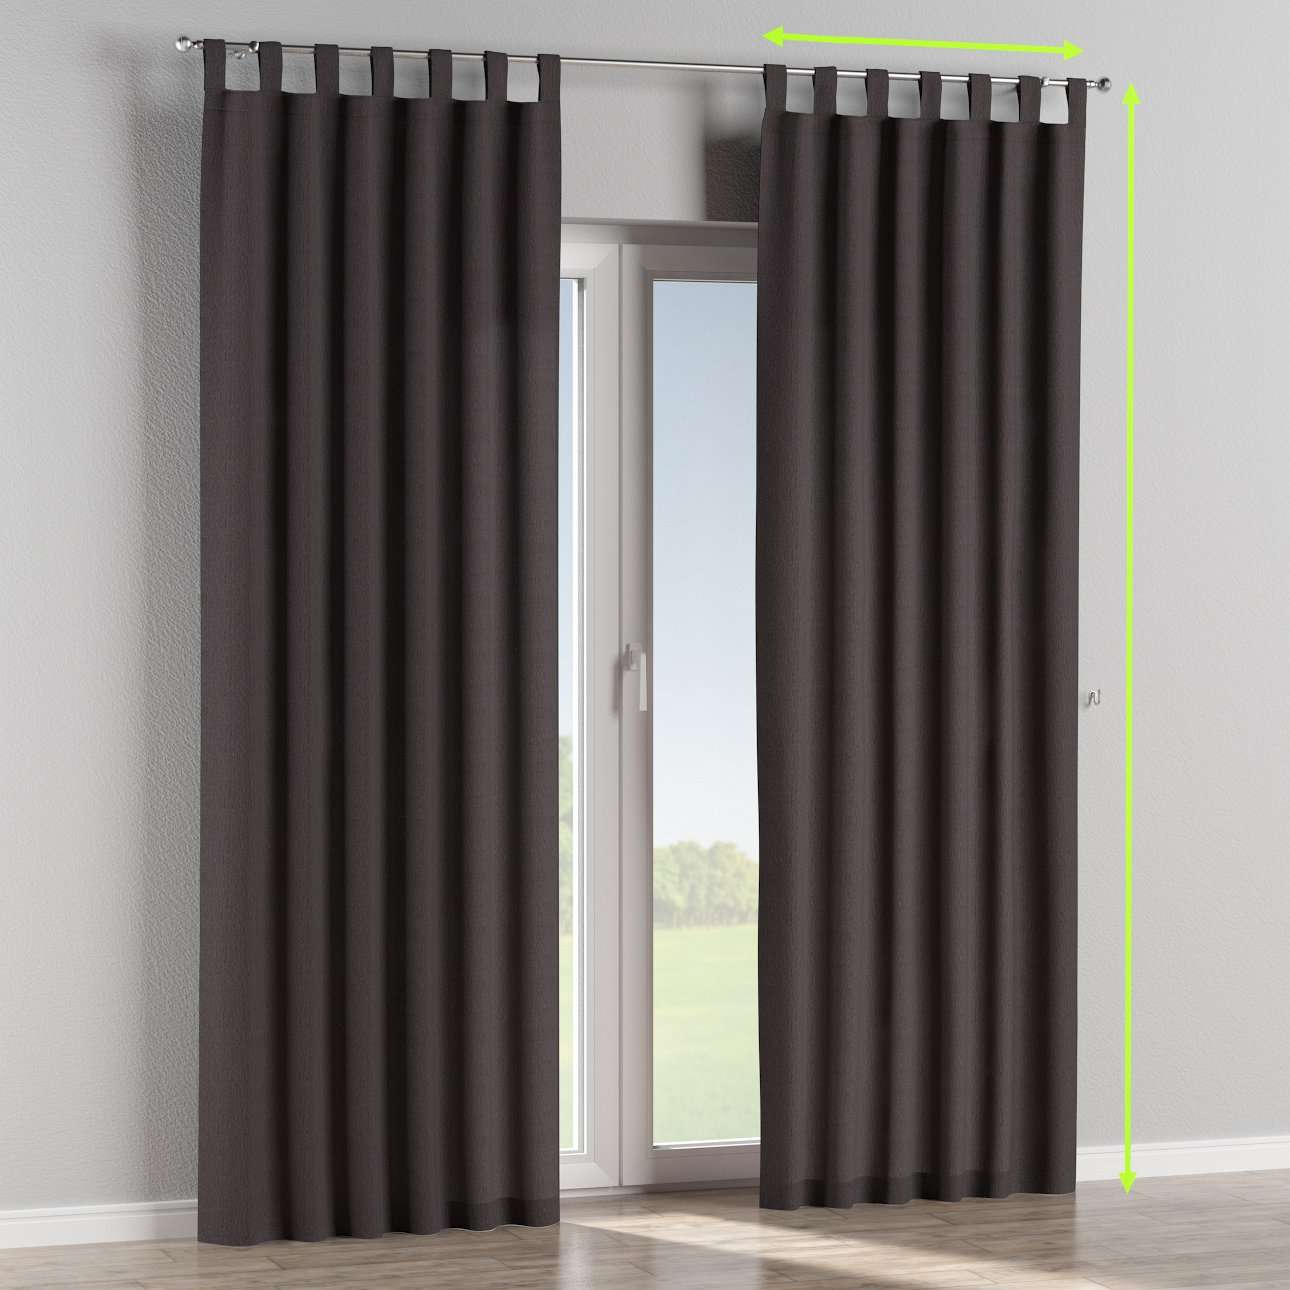 Tab top lined curtains in collection Chenille, fabric: 702-20